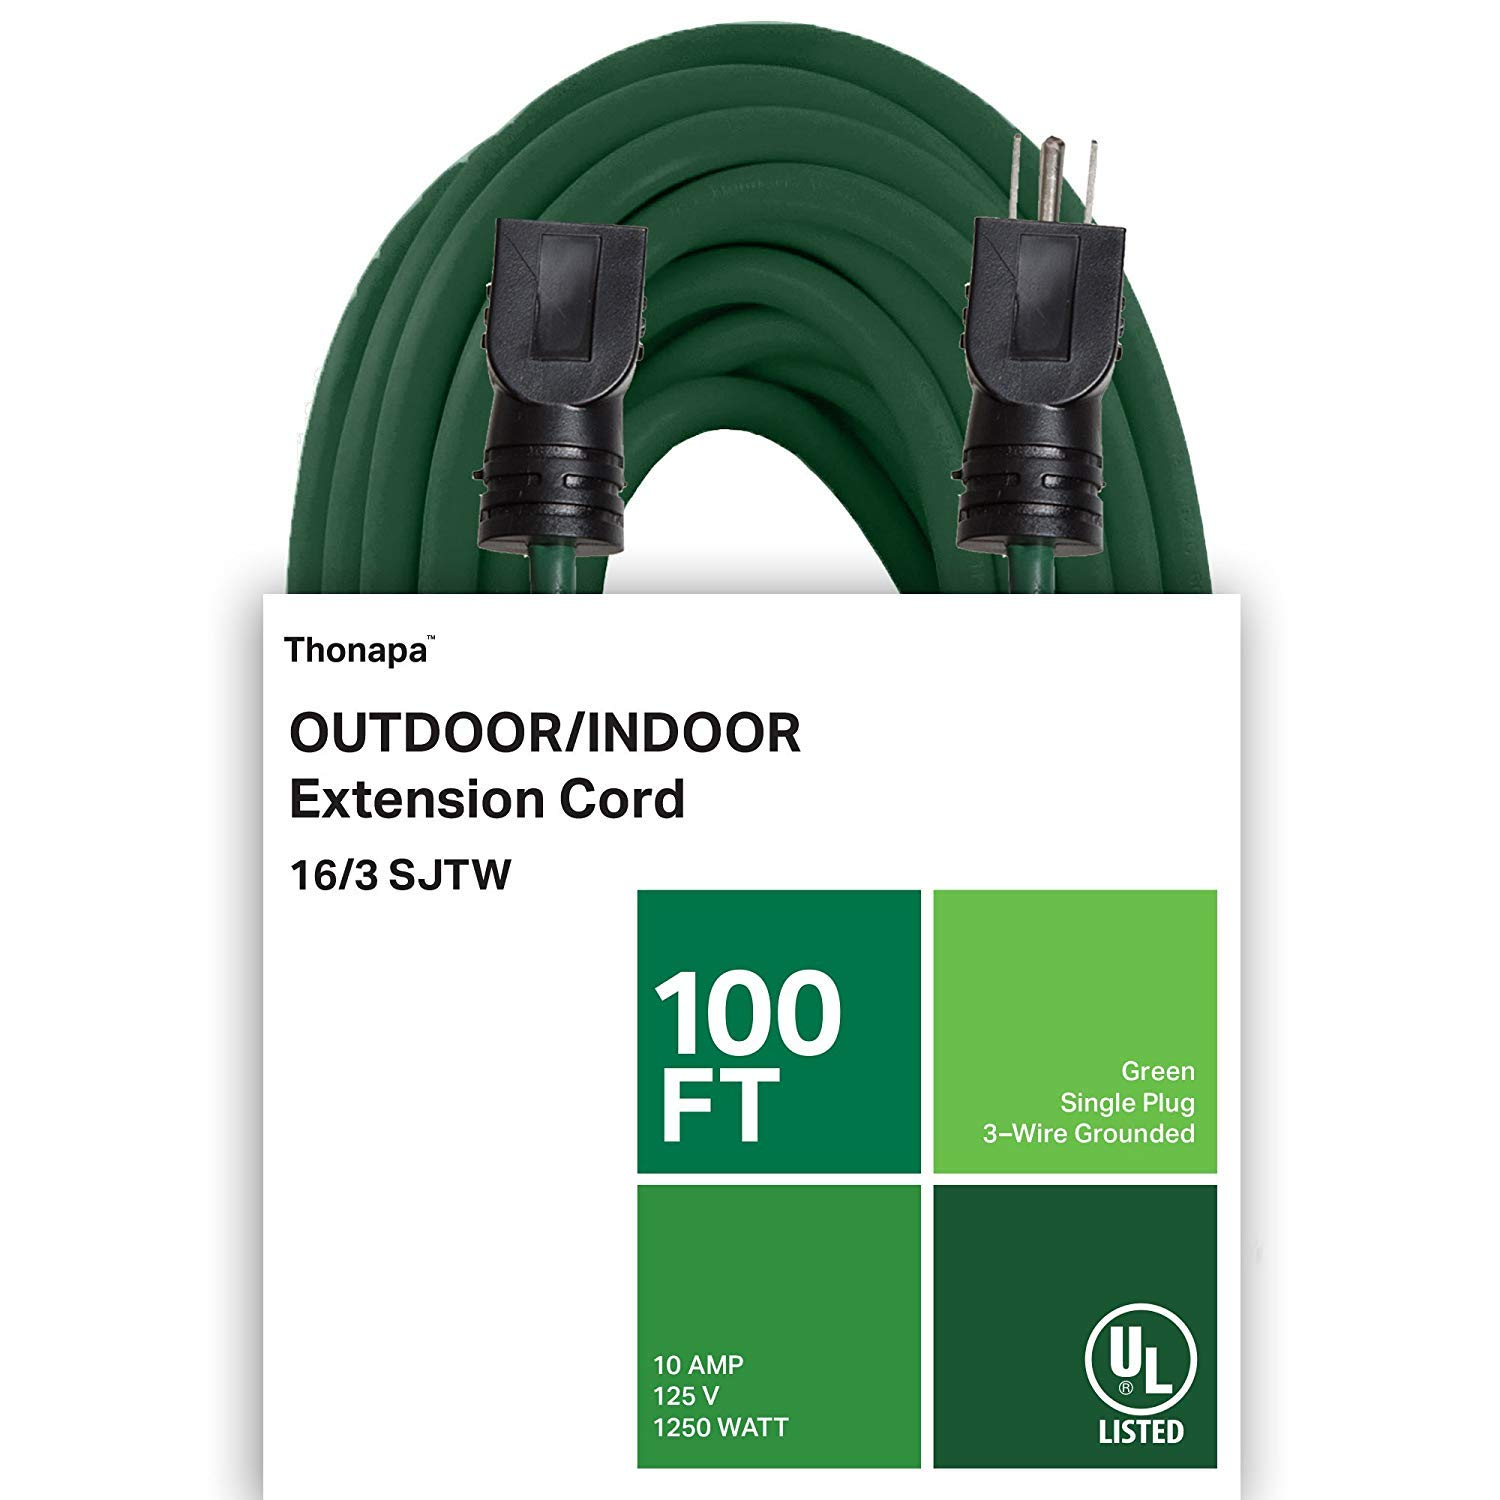 Thonapa 100 Ft Outdoor Extension Cord - 16/3 SJTW Durable Green Cable - Great for Garden and Major Appliances